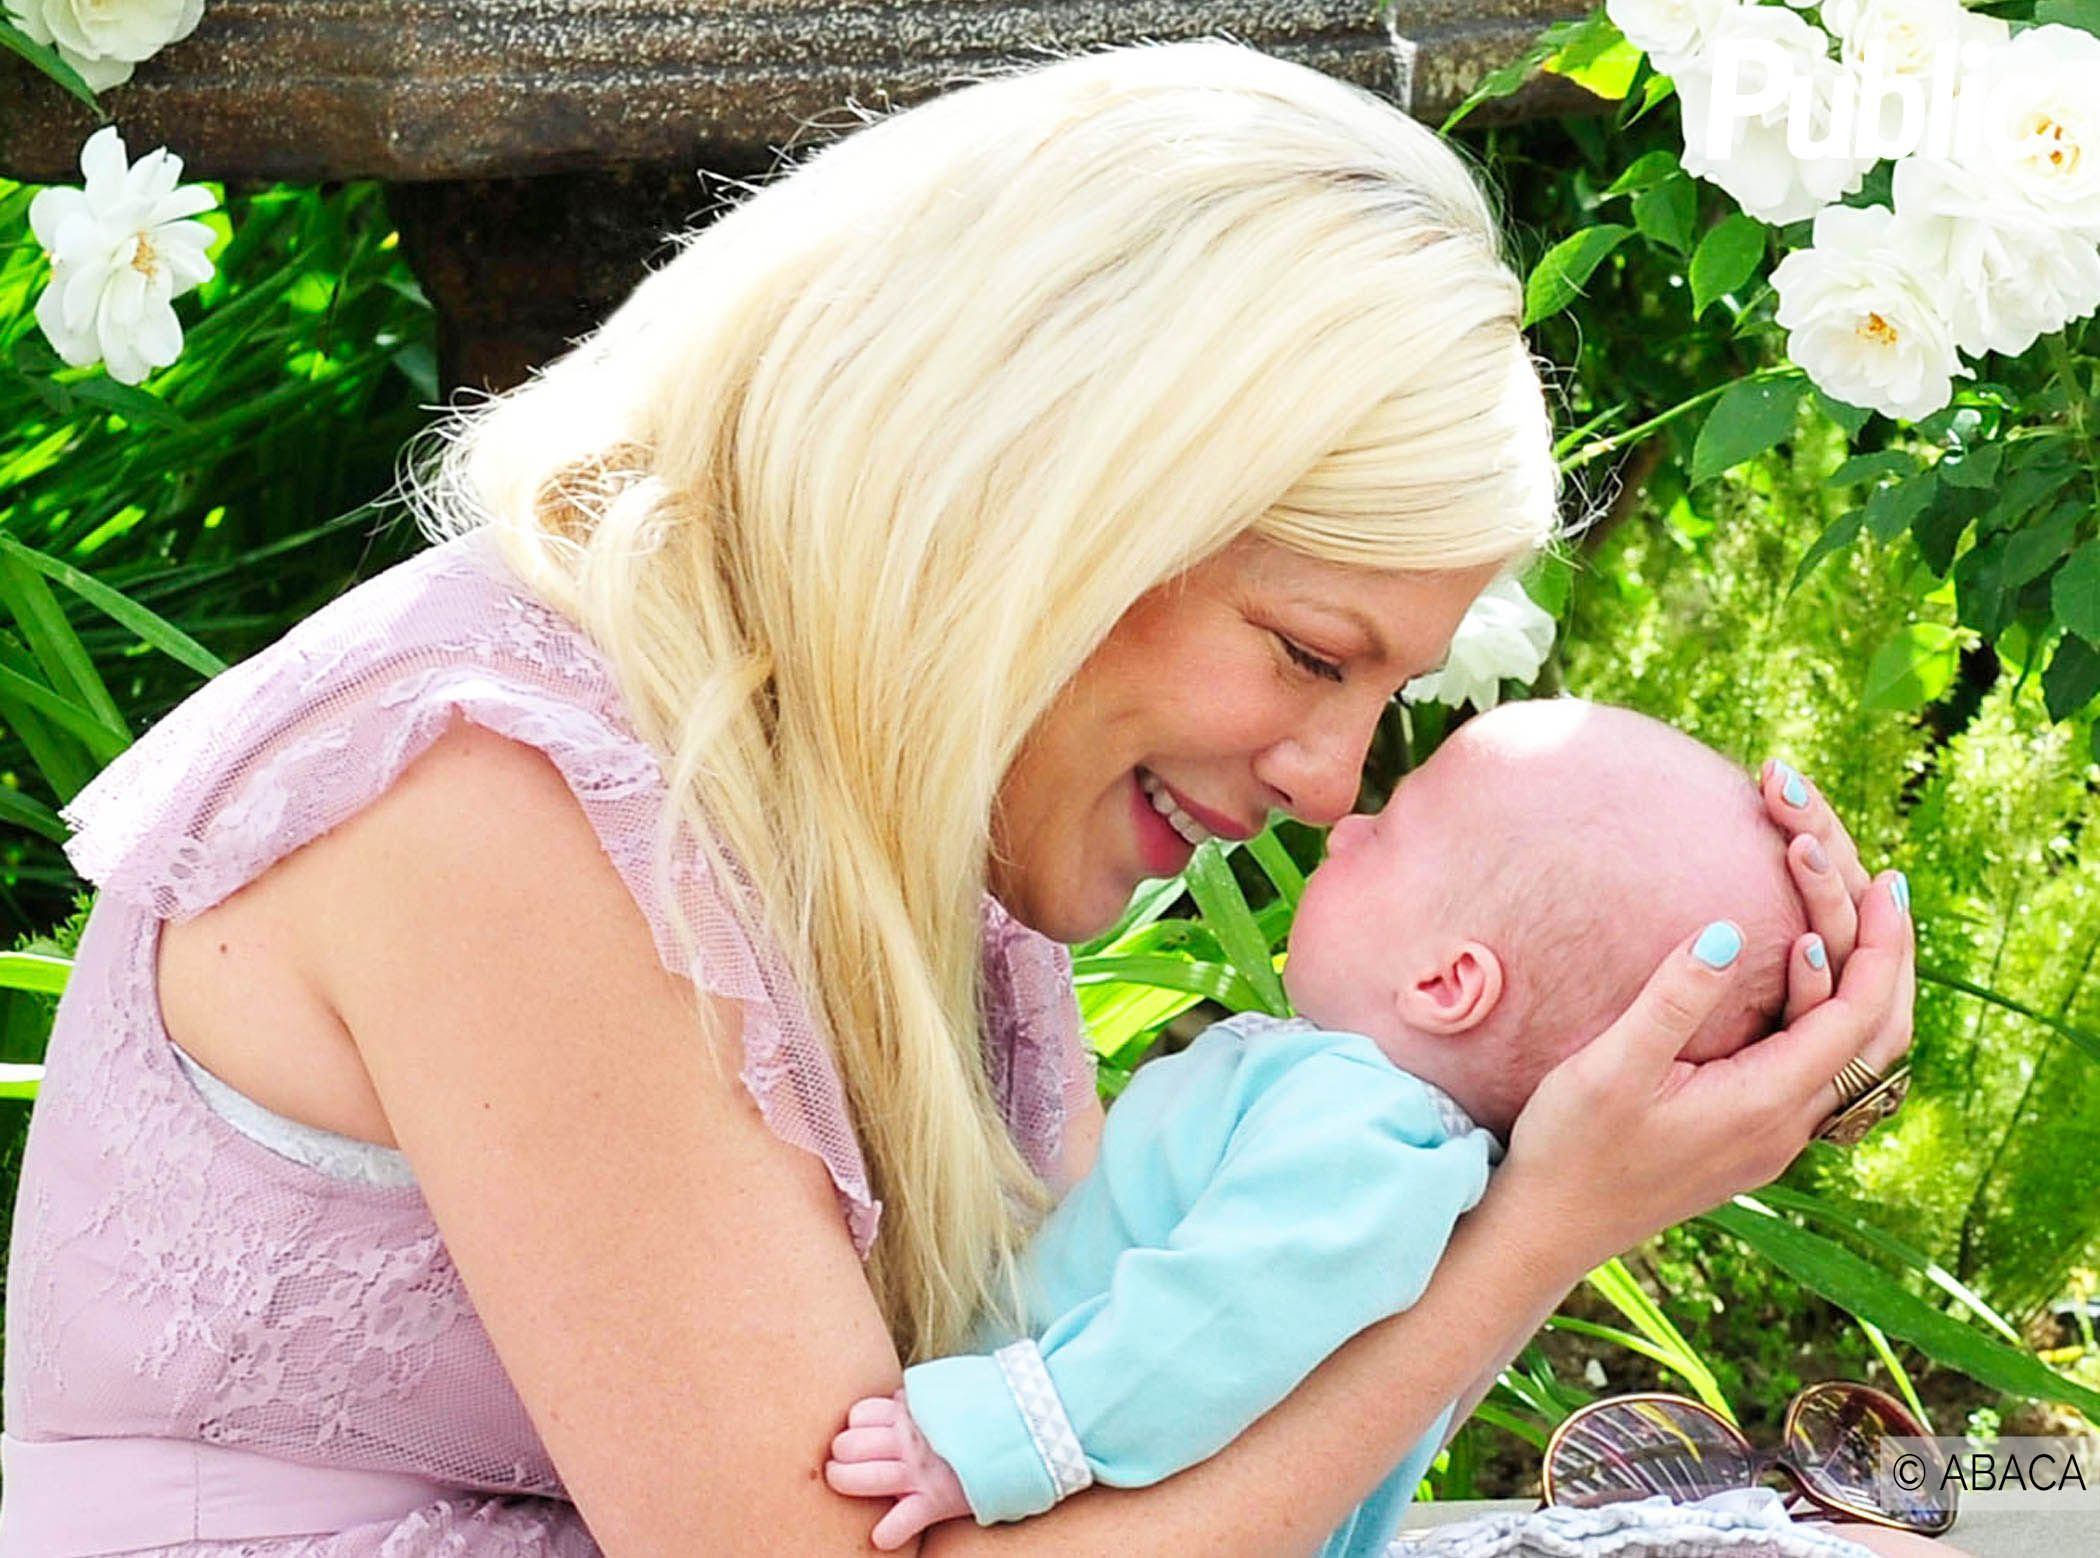 Tori Spelling Claims Son Was